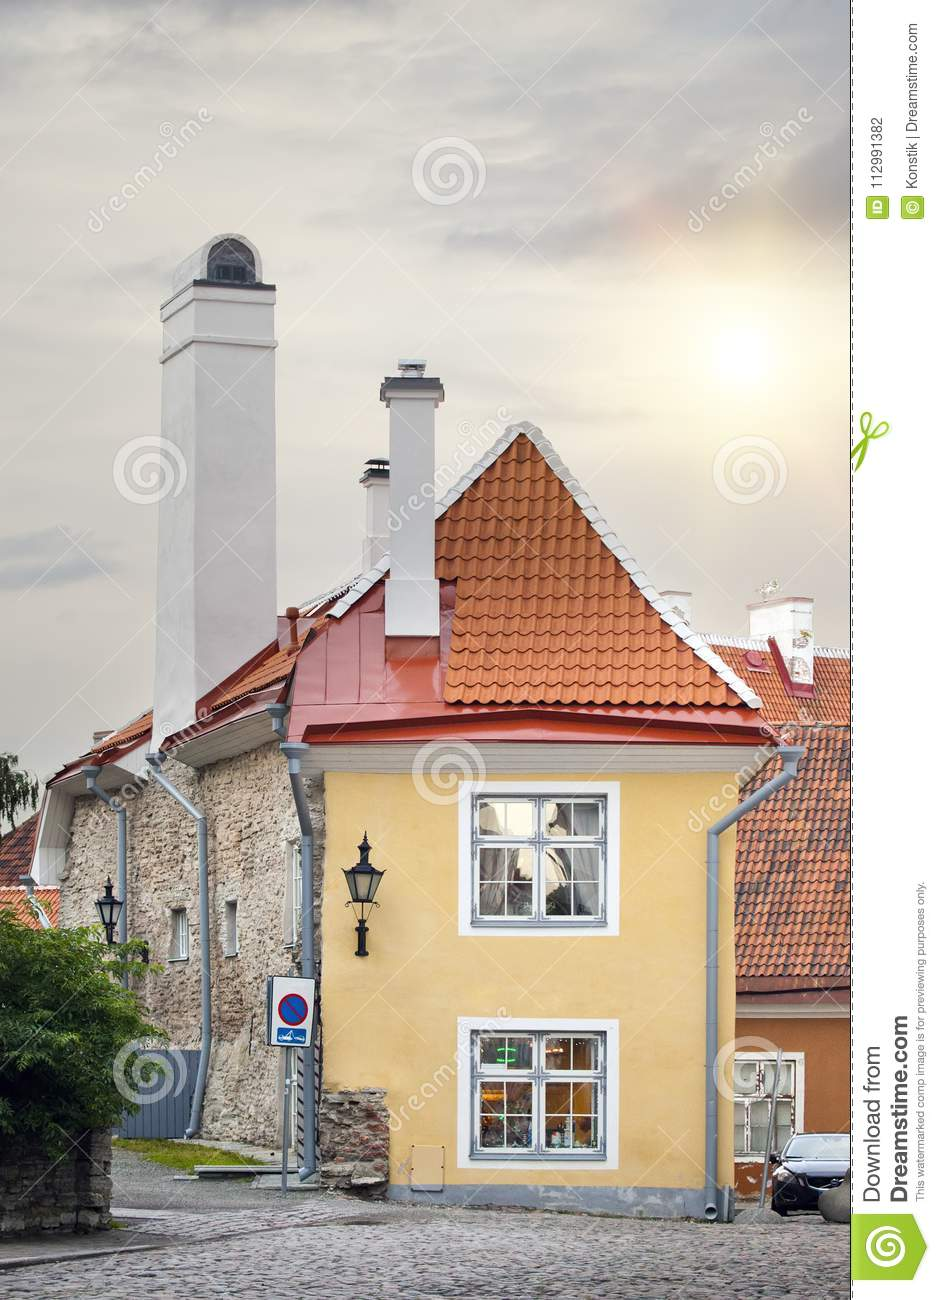 The smallest house, the house of the priest, in the medieval Old city. Tallinn. Estonia